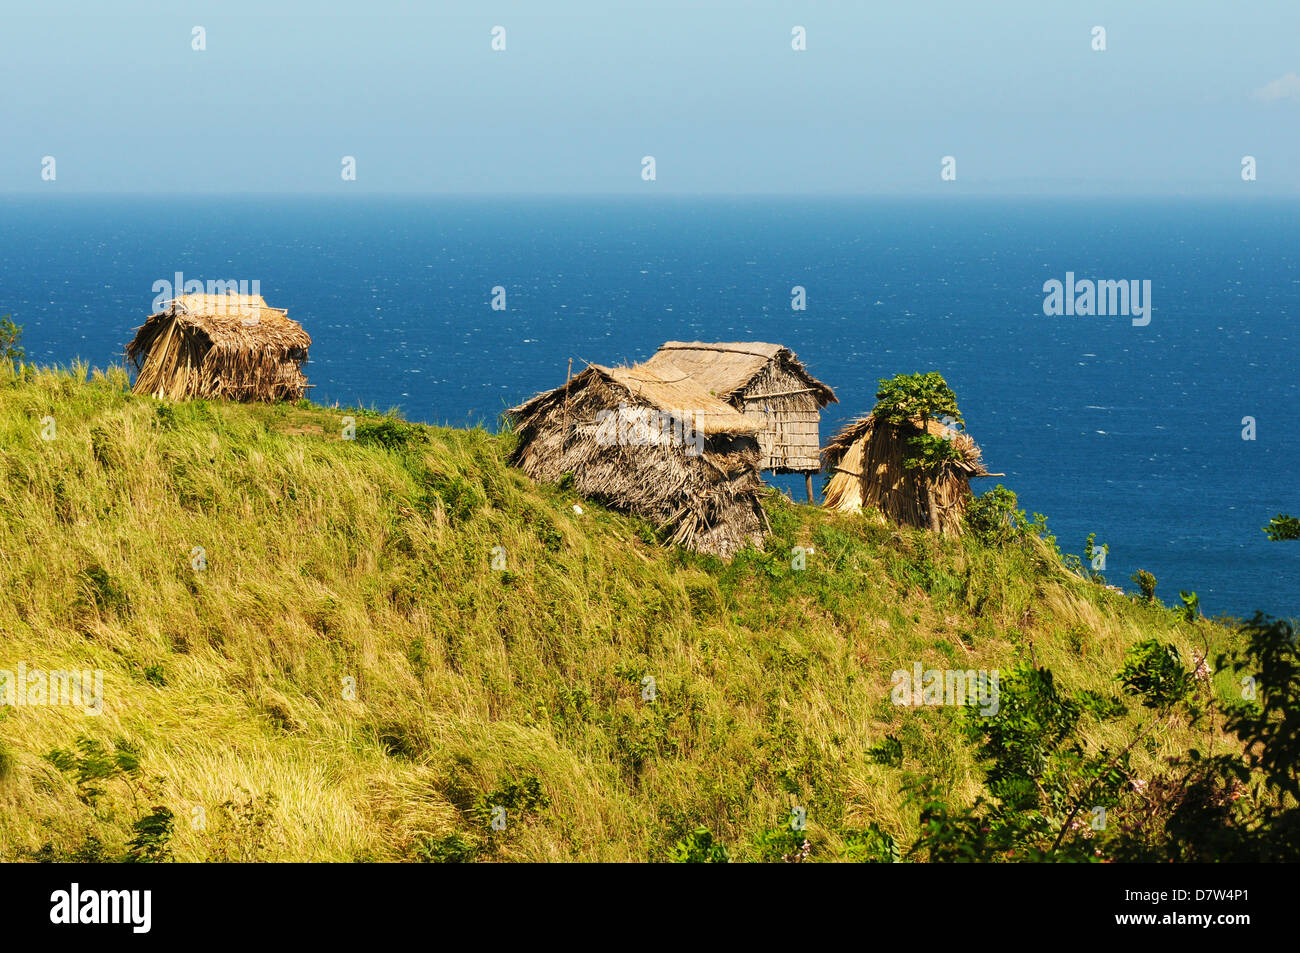 Green hills and Mangyan's huts at the Pacific ocean coast. Sunny weather over Mindoro Island, Philippines - Stock Image